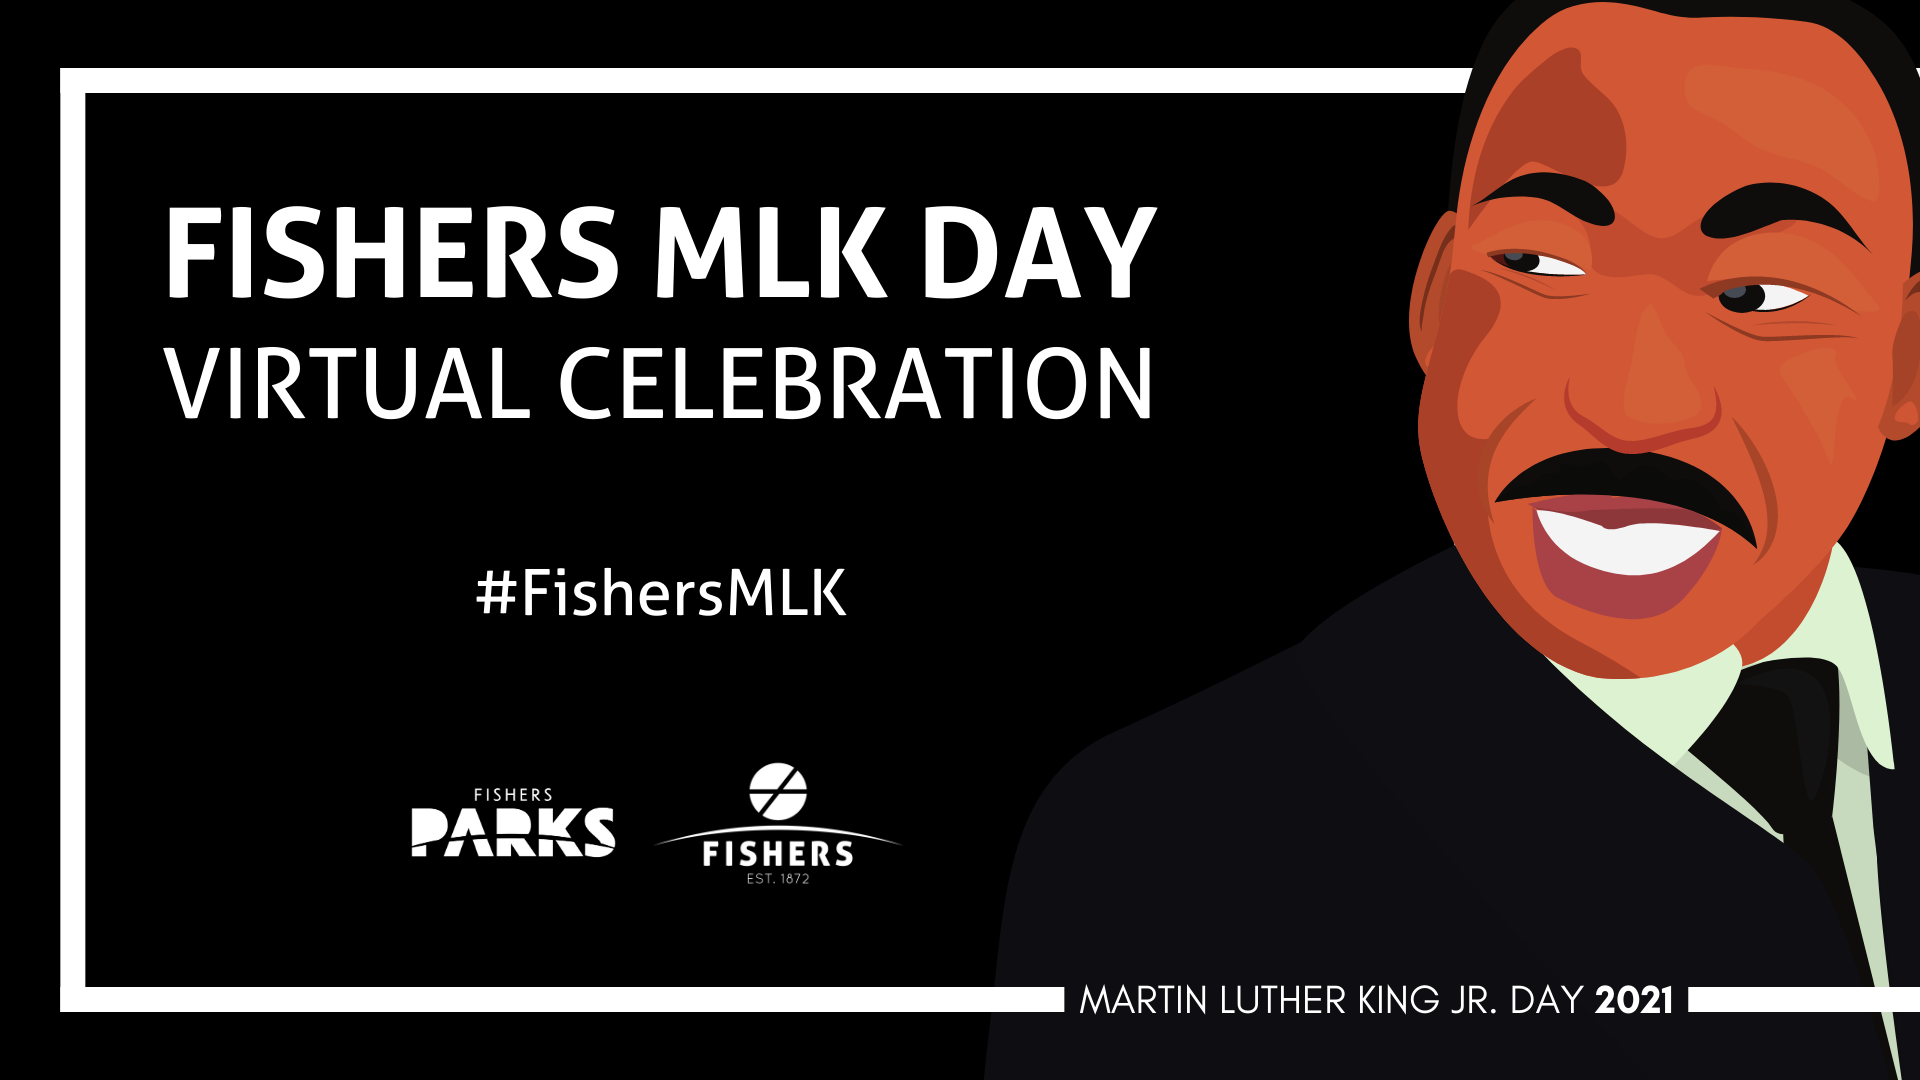 FISHERS MLK DAY VIRTUAL CELEBRATION #FISHERSMLK